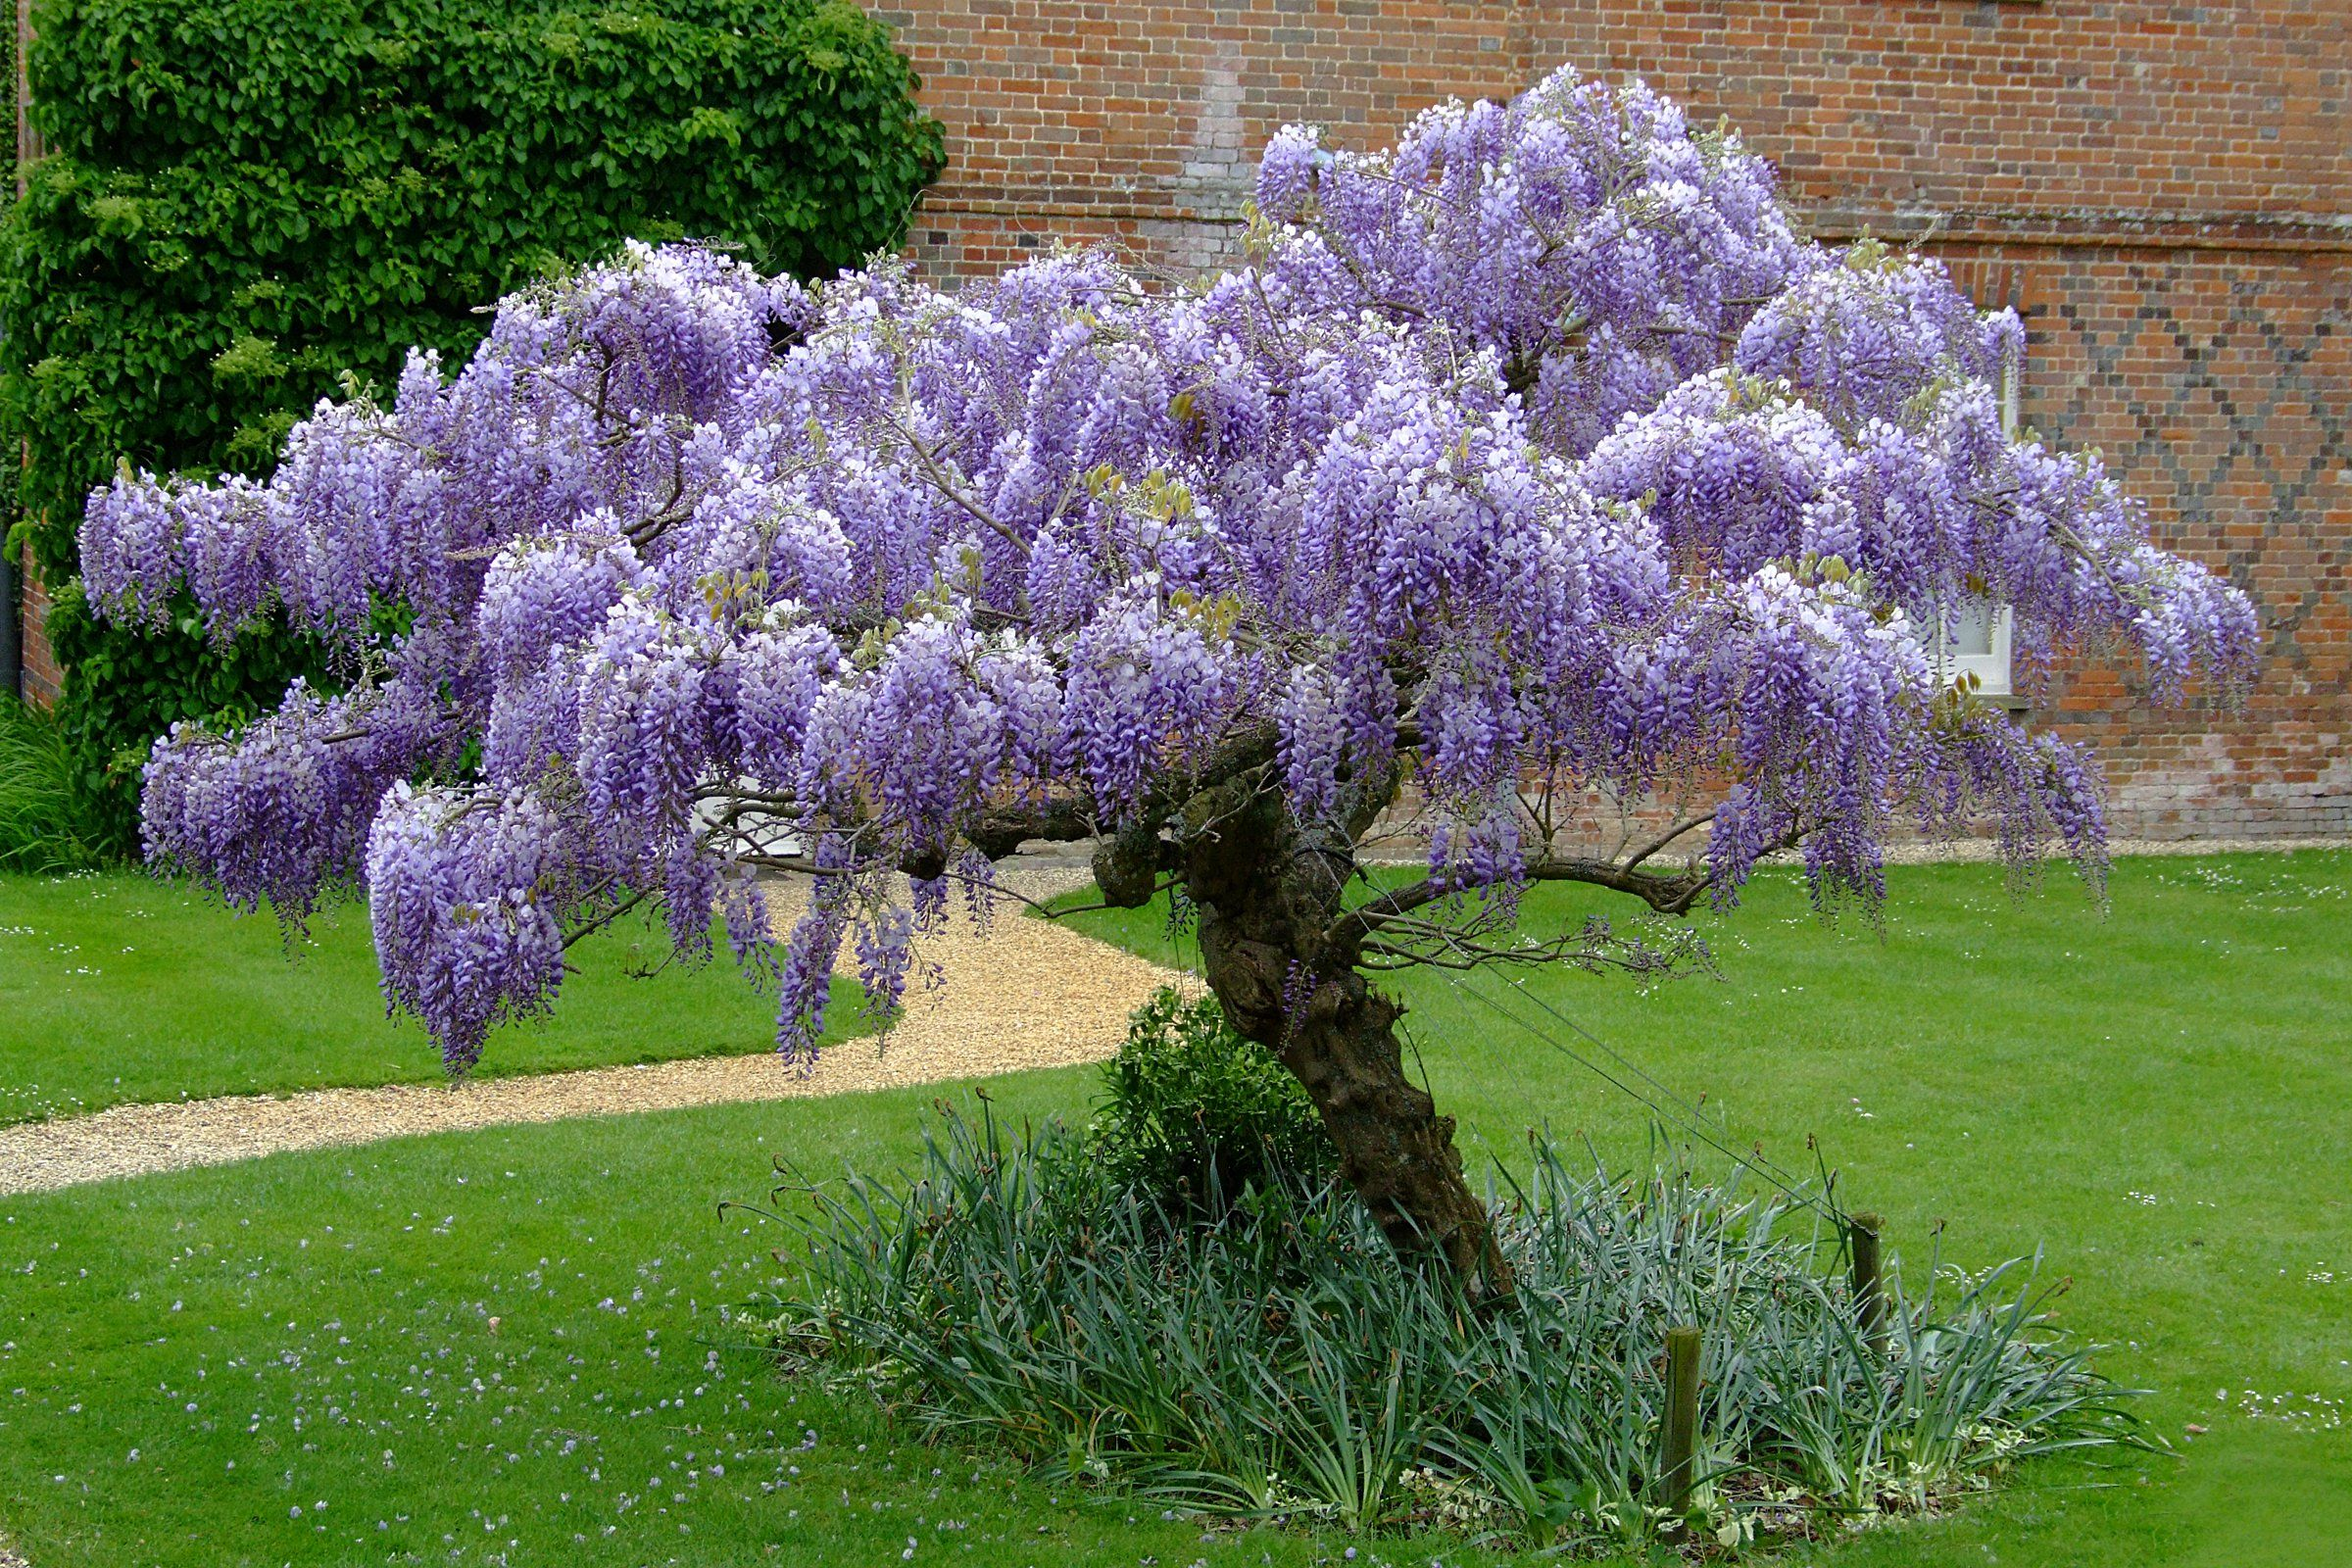 How To Plant Prune And Care For Wisterias Wisteria Tree Garden Vines Planting Flowers